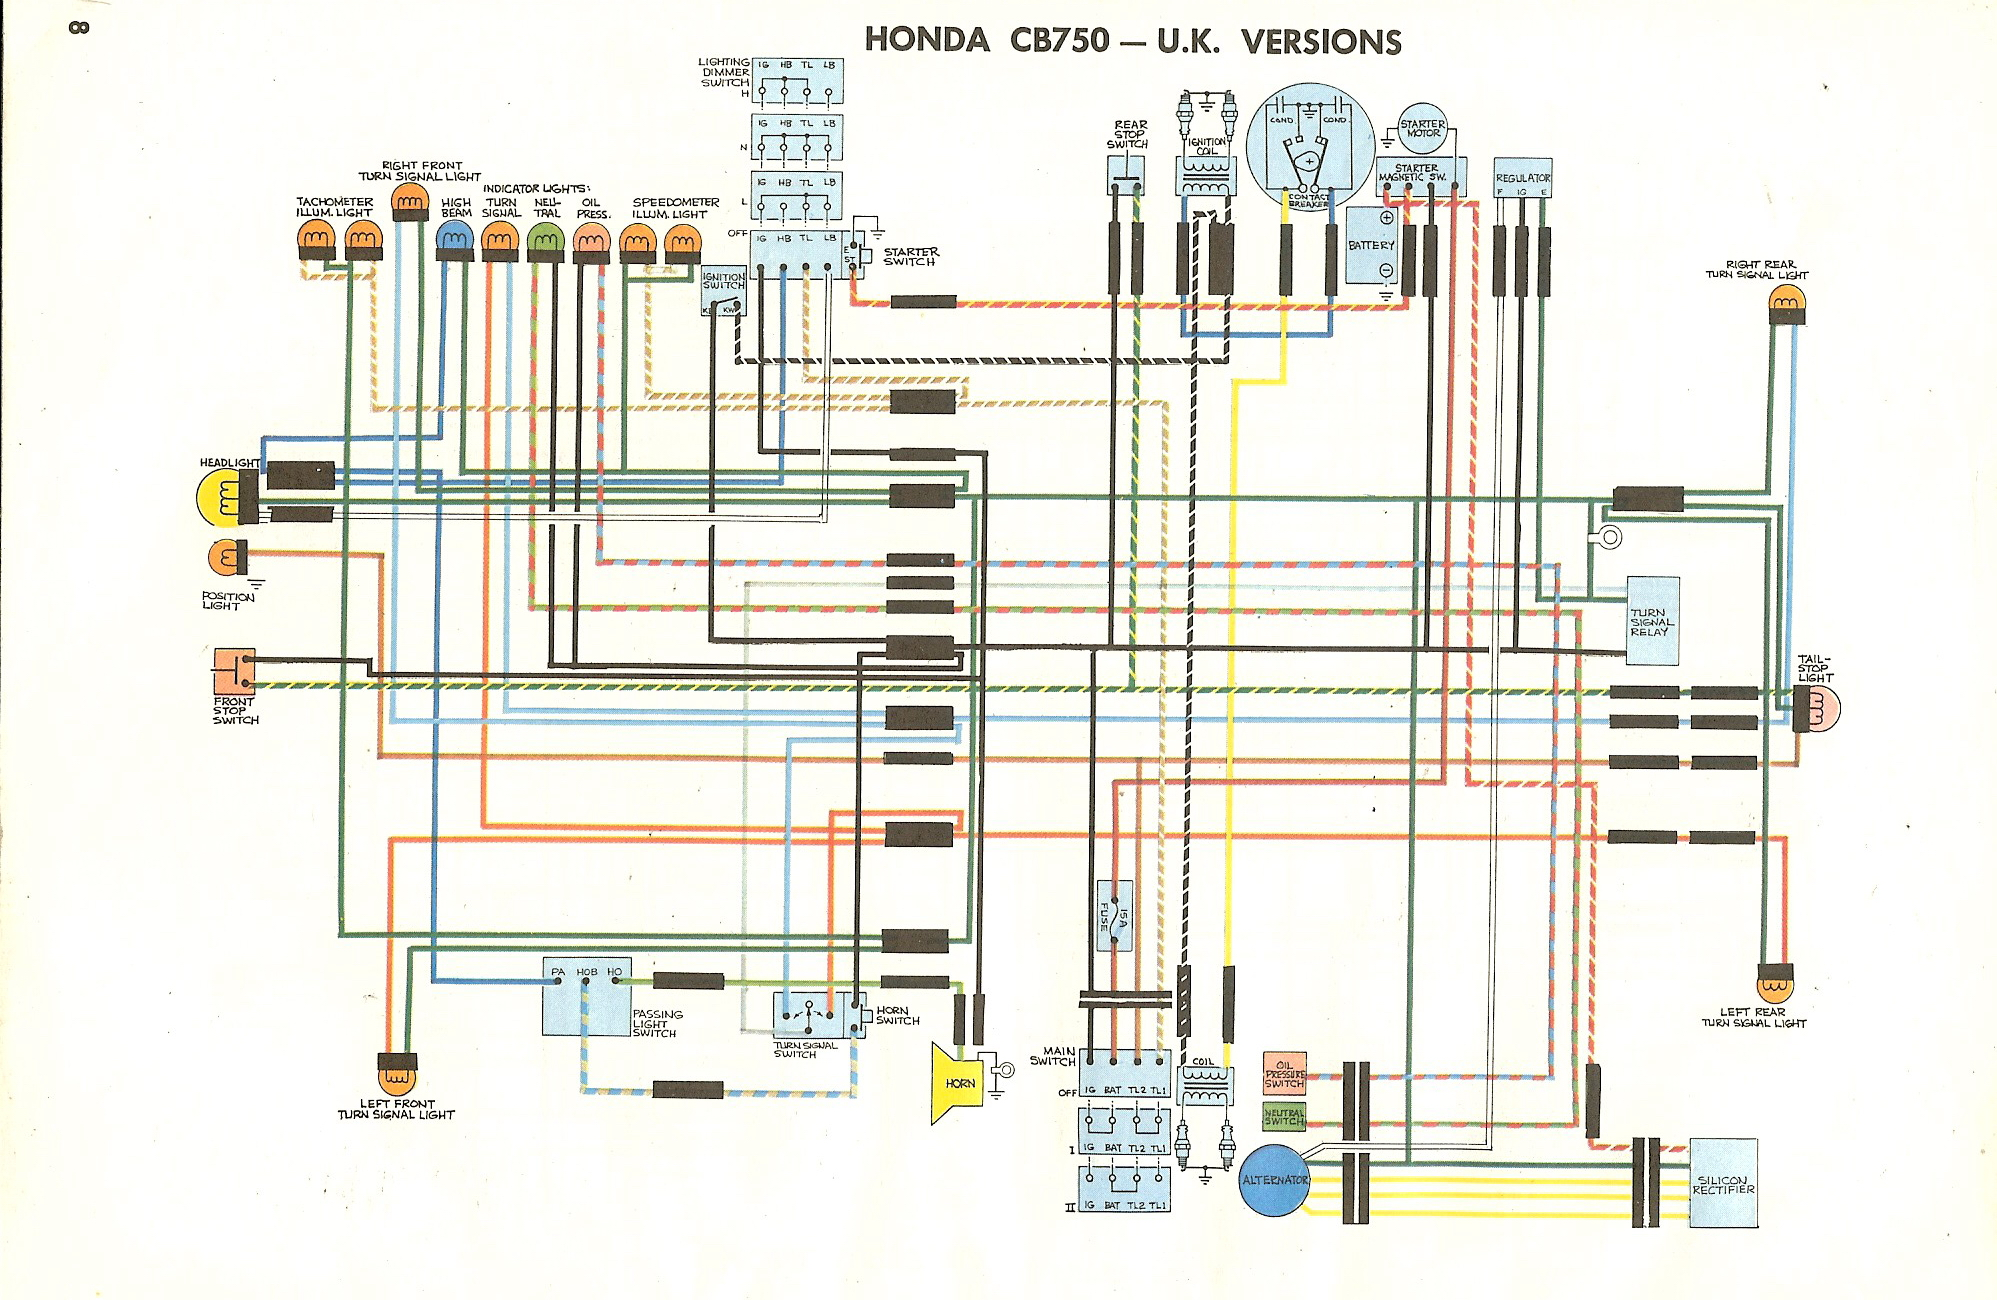 WD750UK 1978 honda cb750 wiring diagram honda cb 700 ignition wire diagram 1976 cb550f wiring diagram at webbmarketing.co